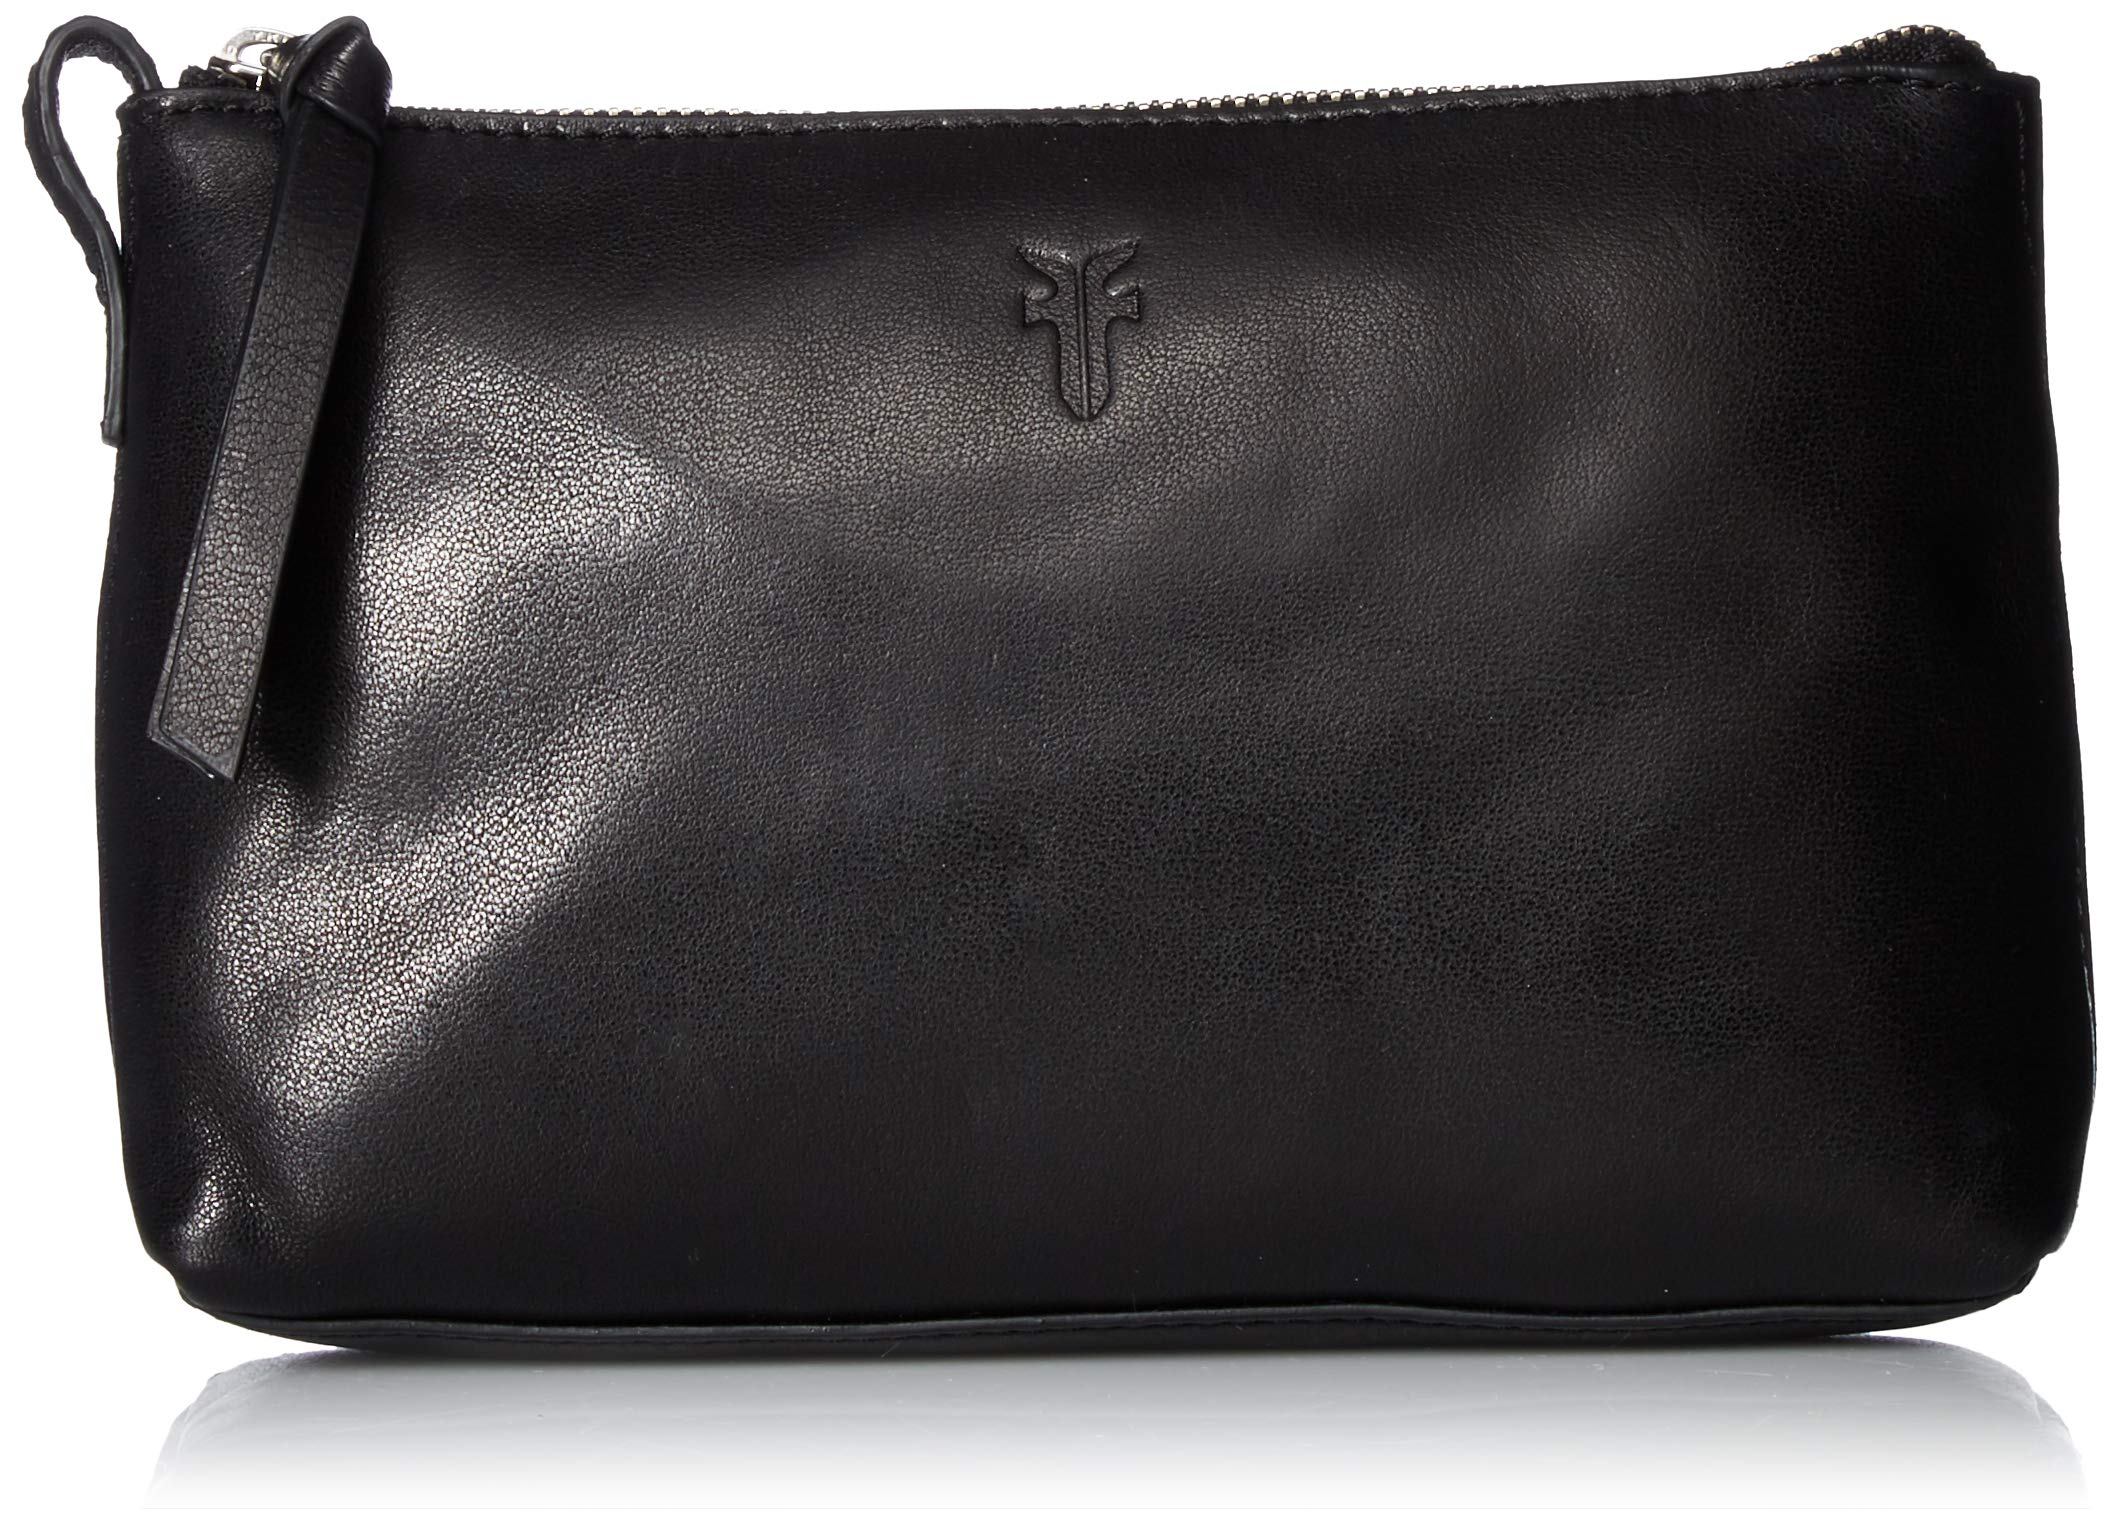 FRYE Leather Zip Makeup Case, black